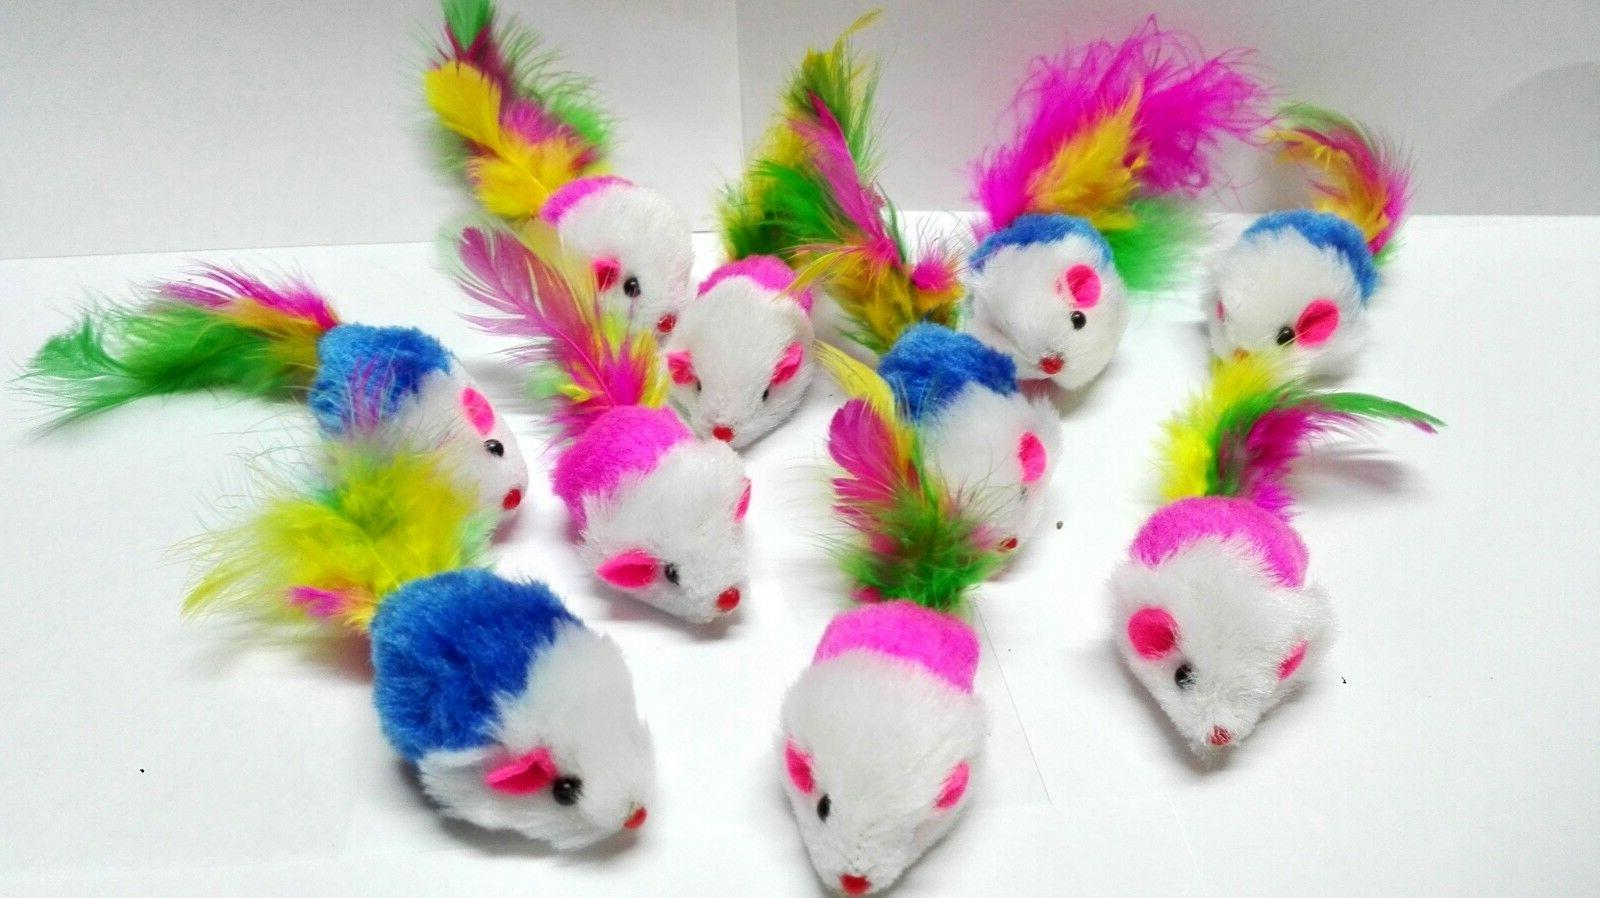 fur mice cat toys soft and durable